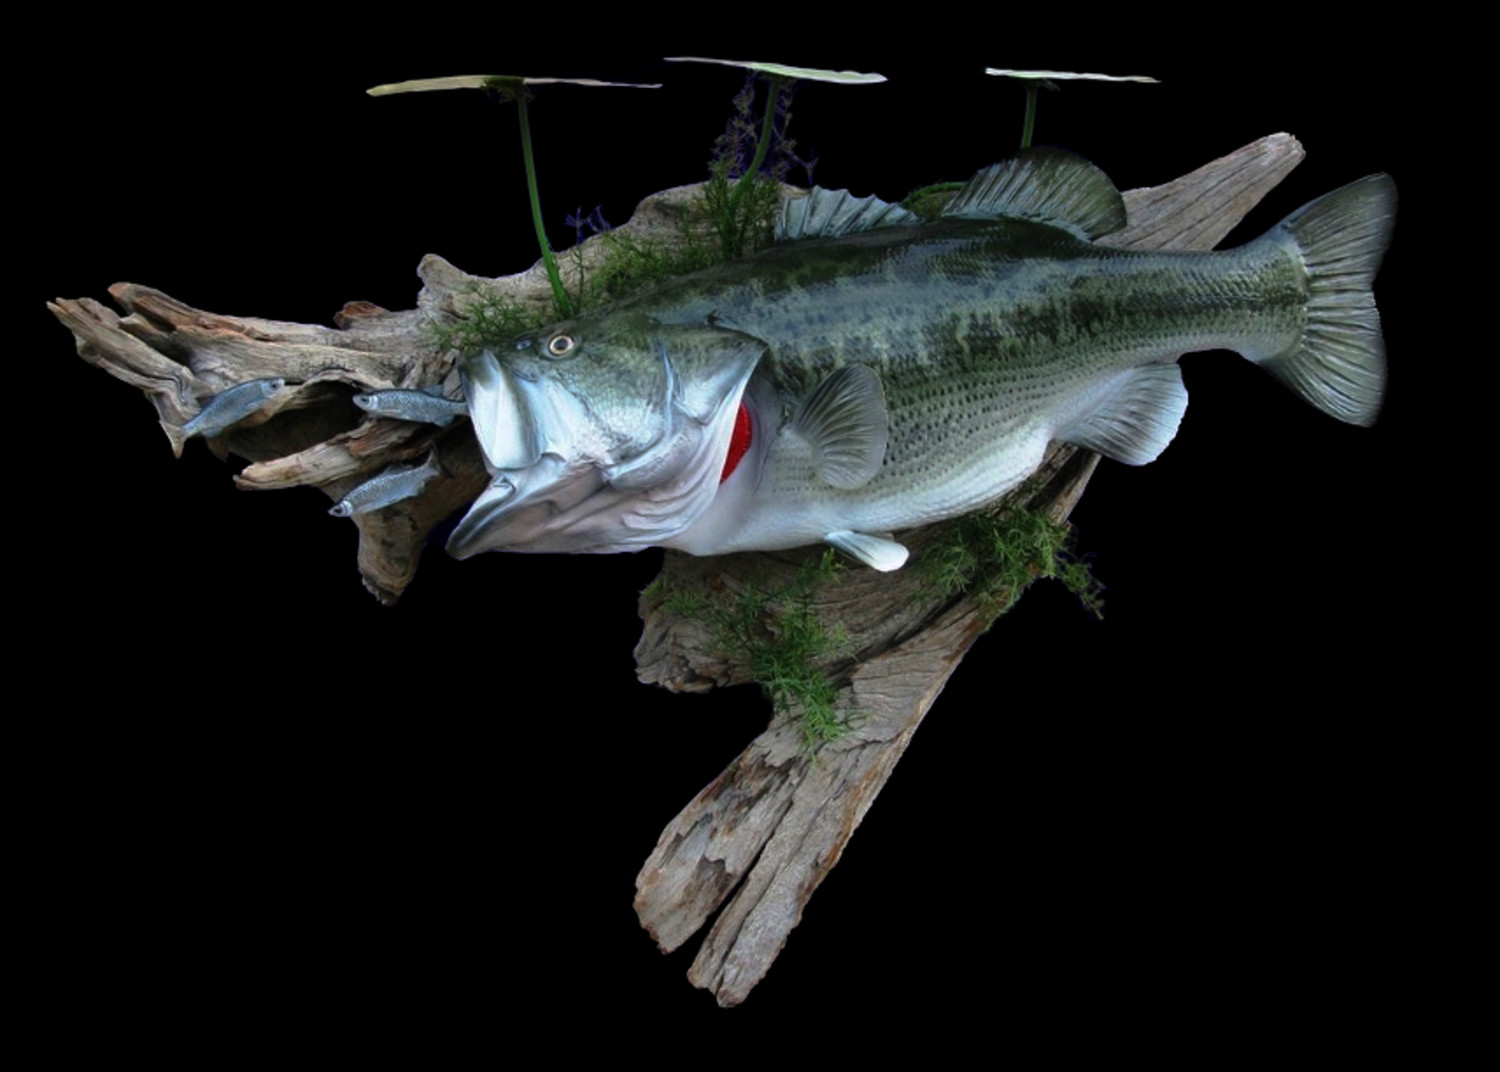 Largemouth bass fish mount and fish replicas for Replica fish mounts